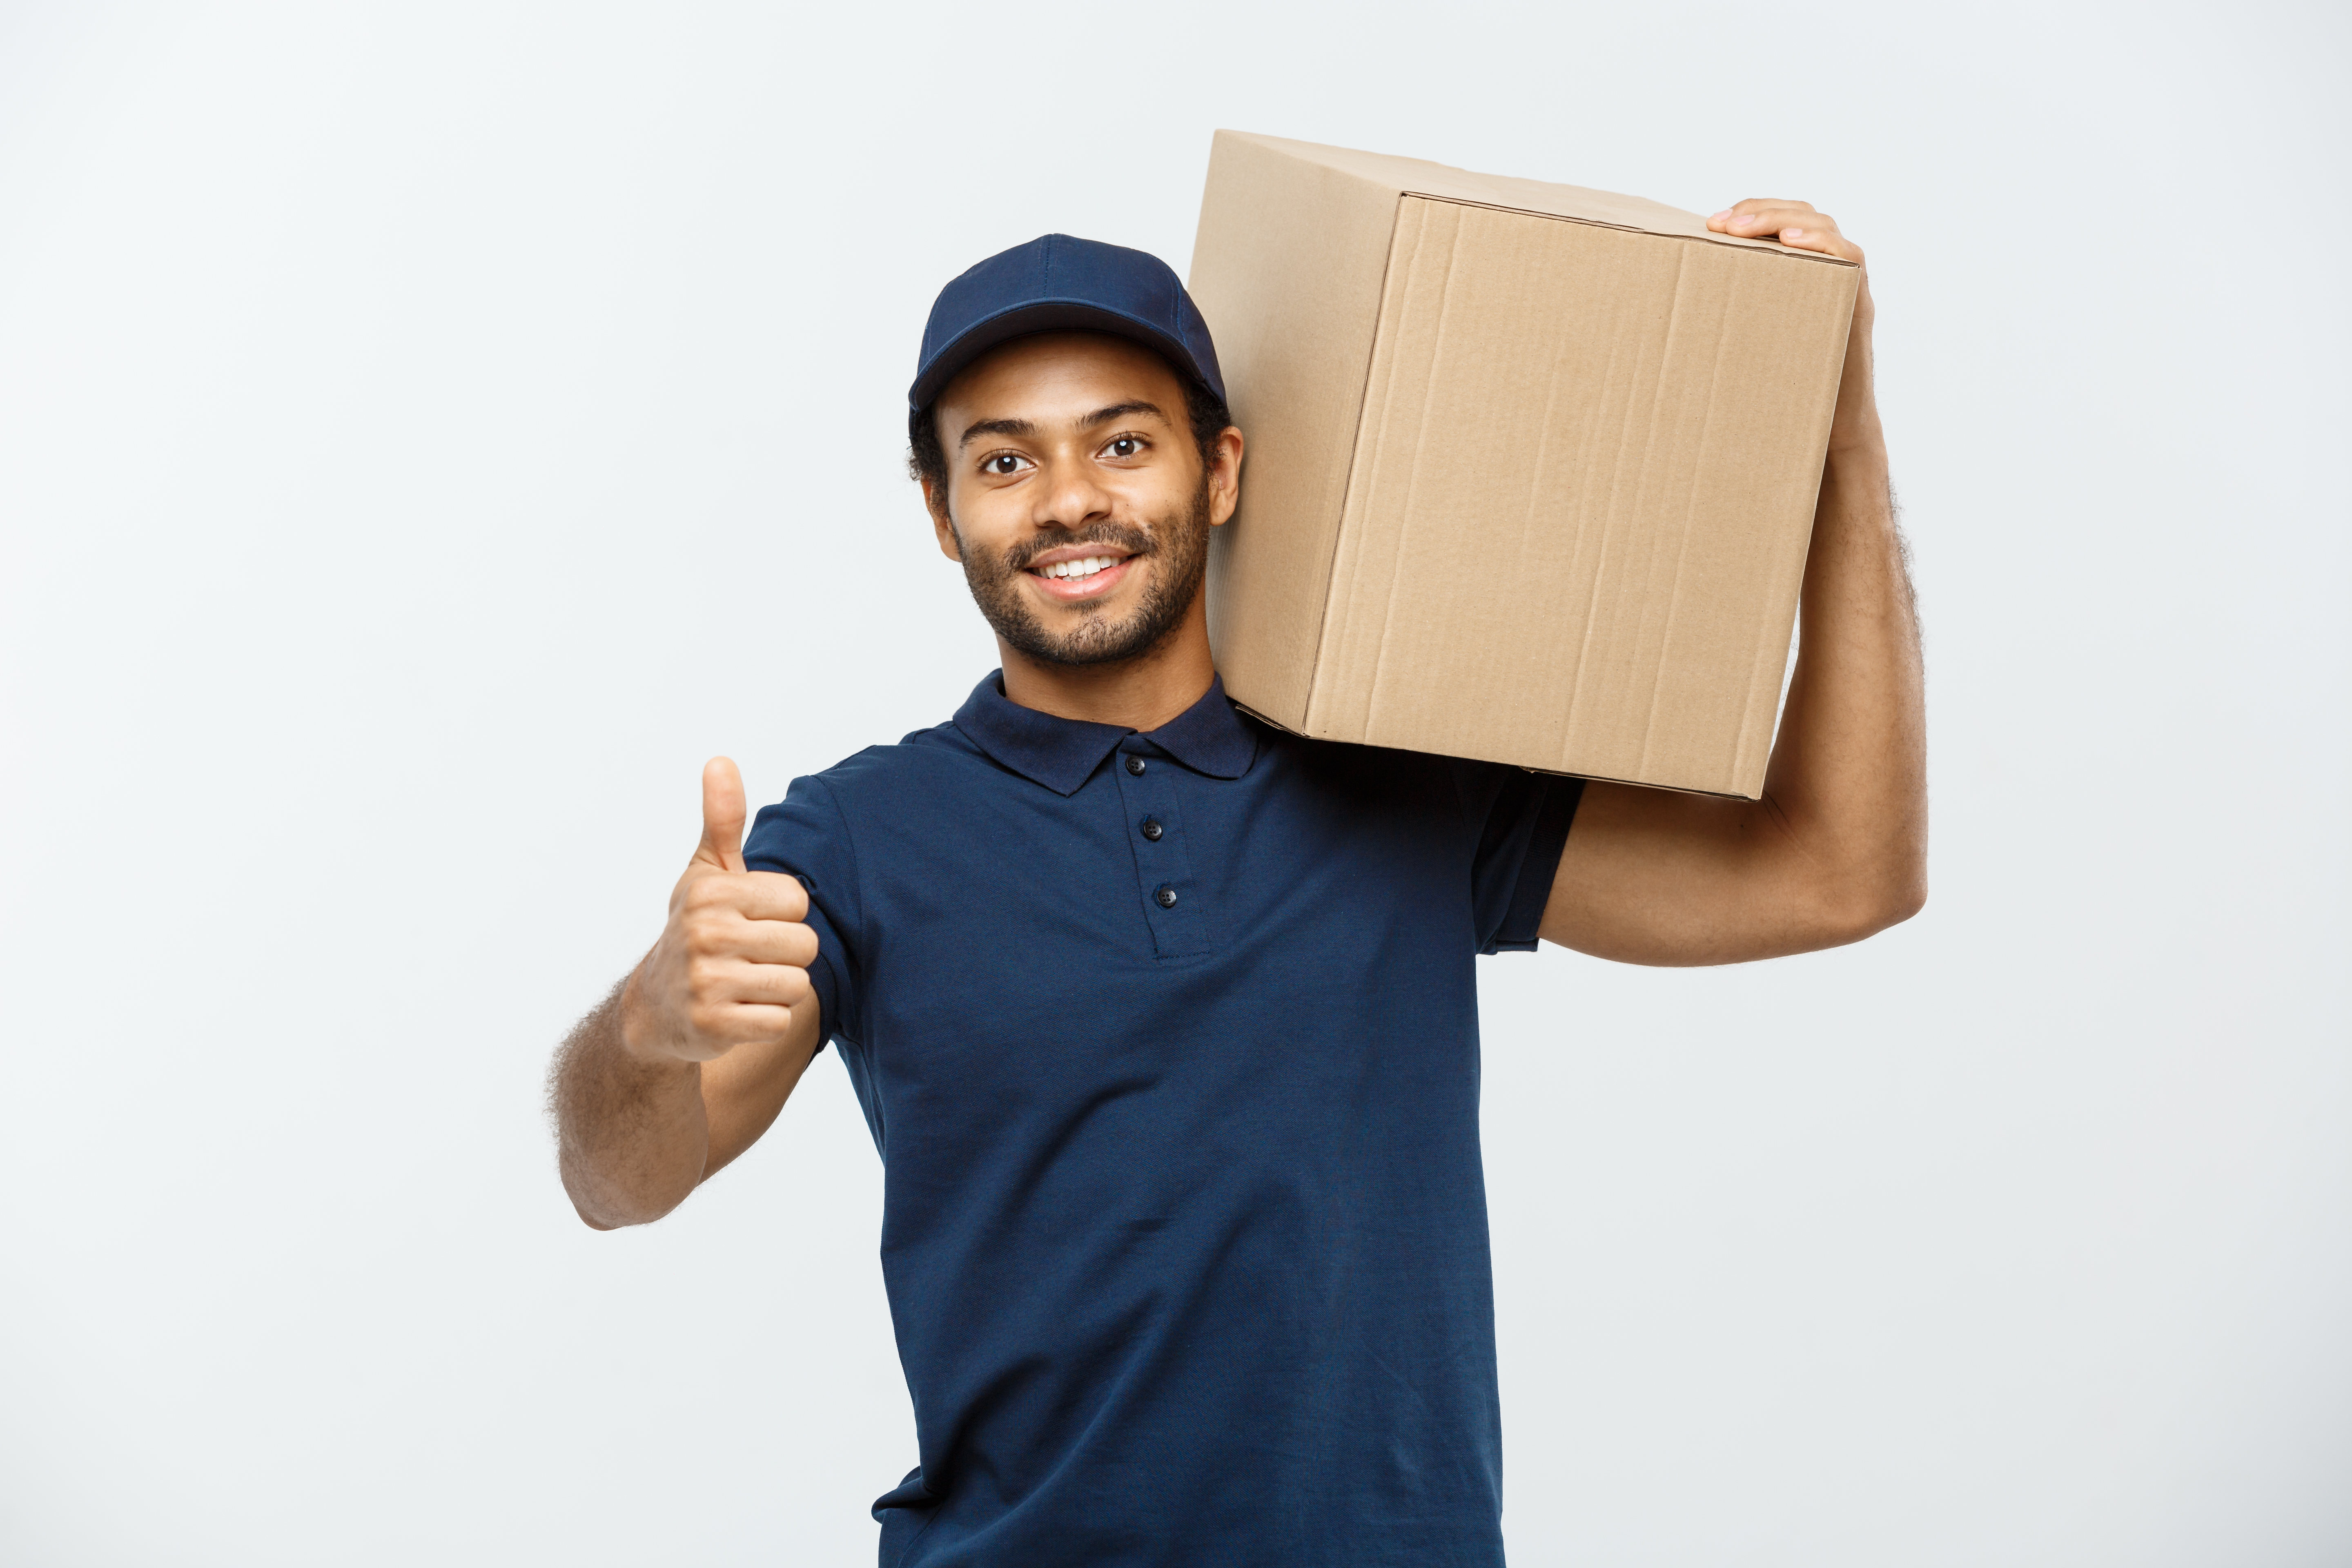 a person holding a cardboard box and showing a thumb up because of successful local moving